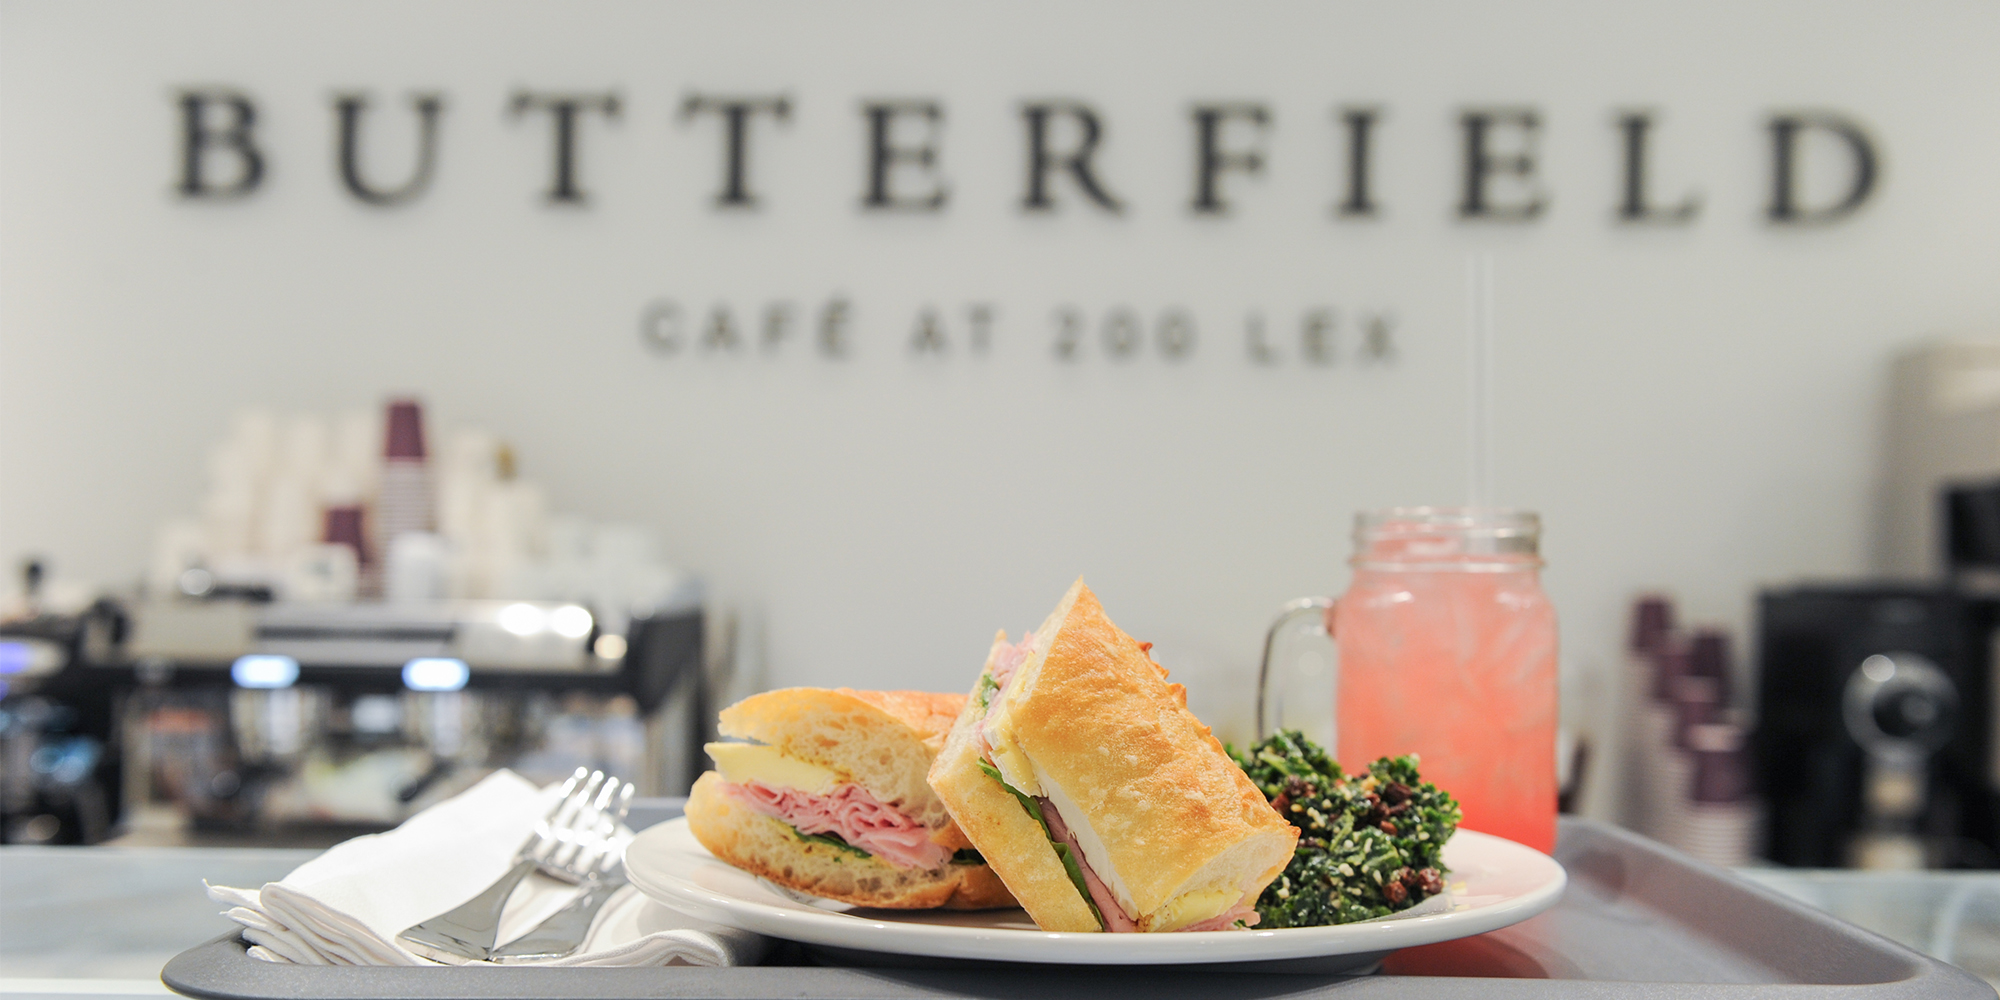 Butterfield Cafe Food Homepage Header_Web